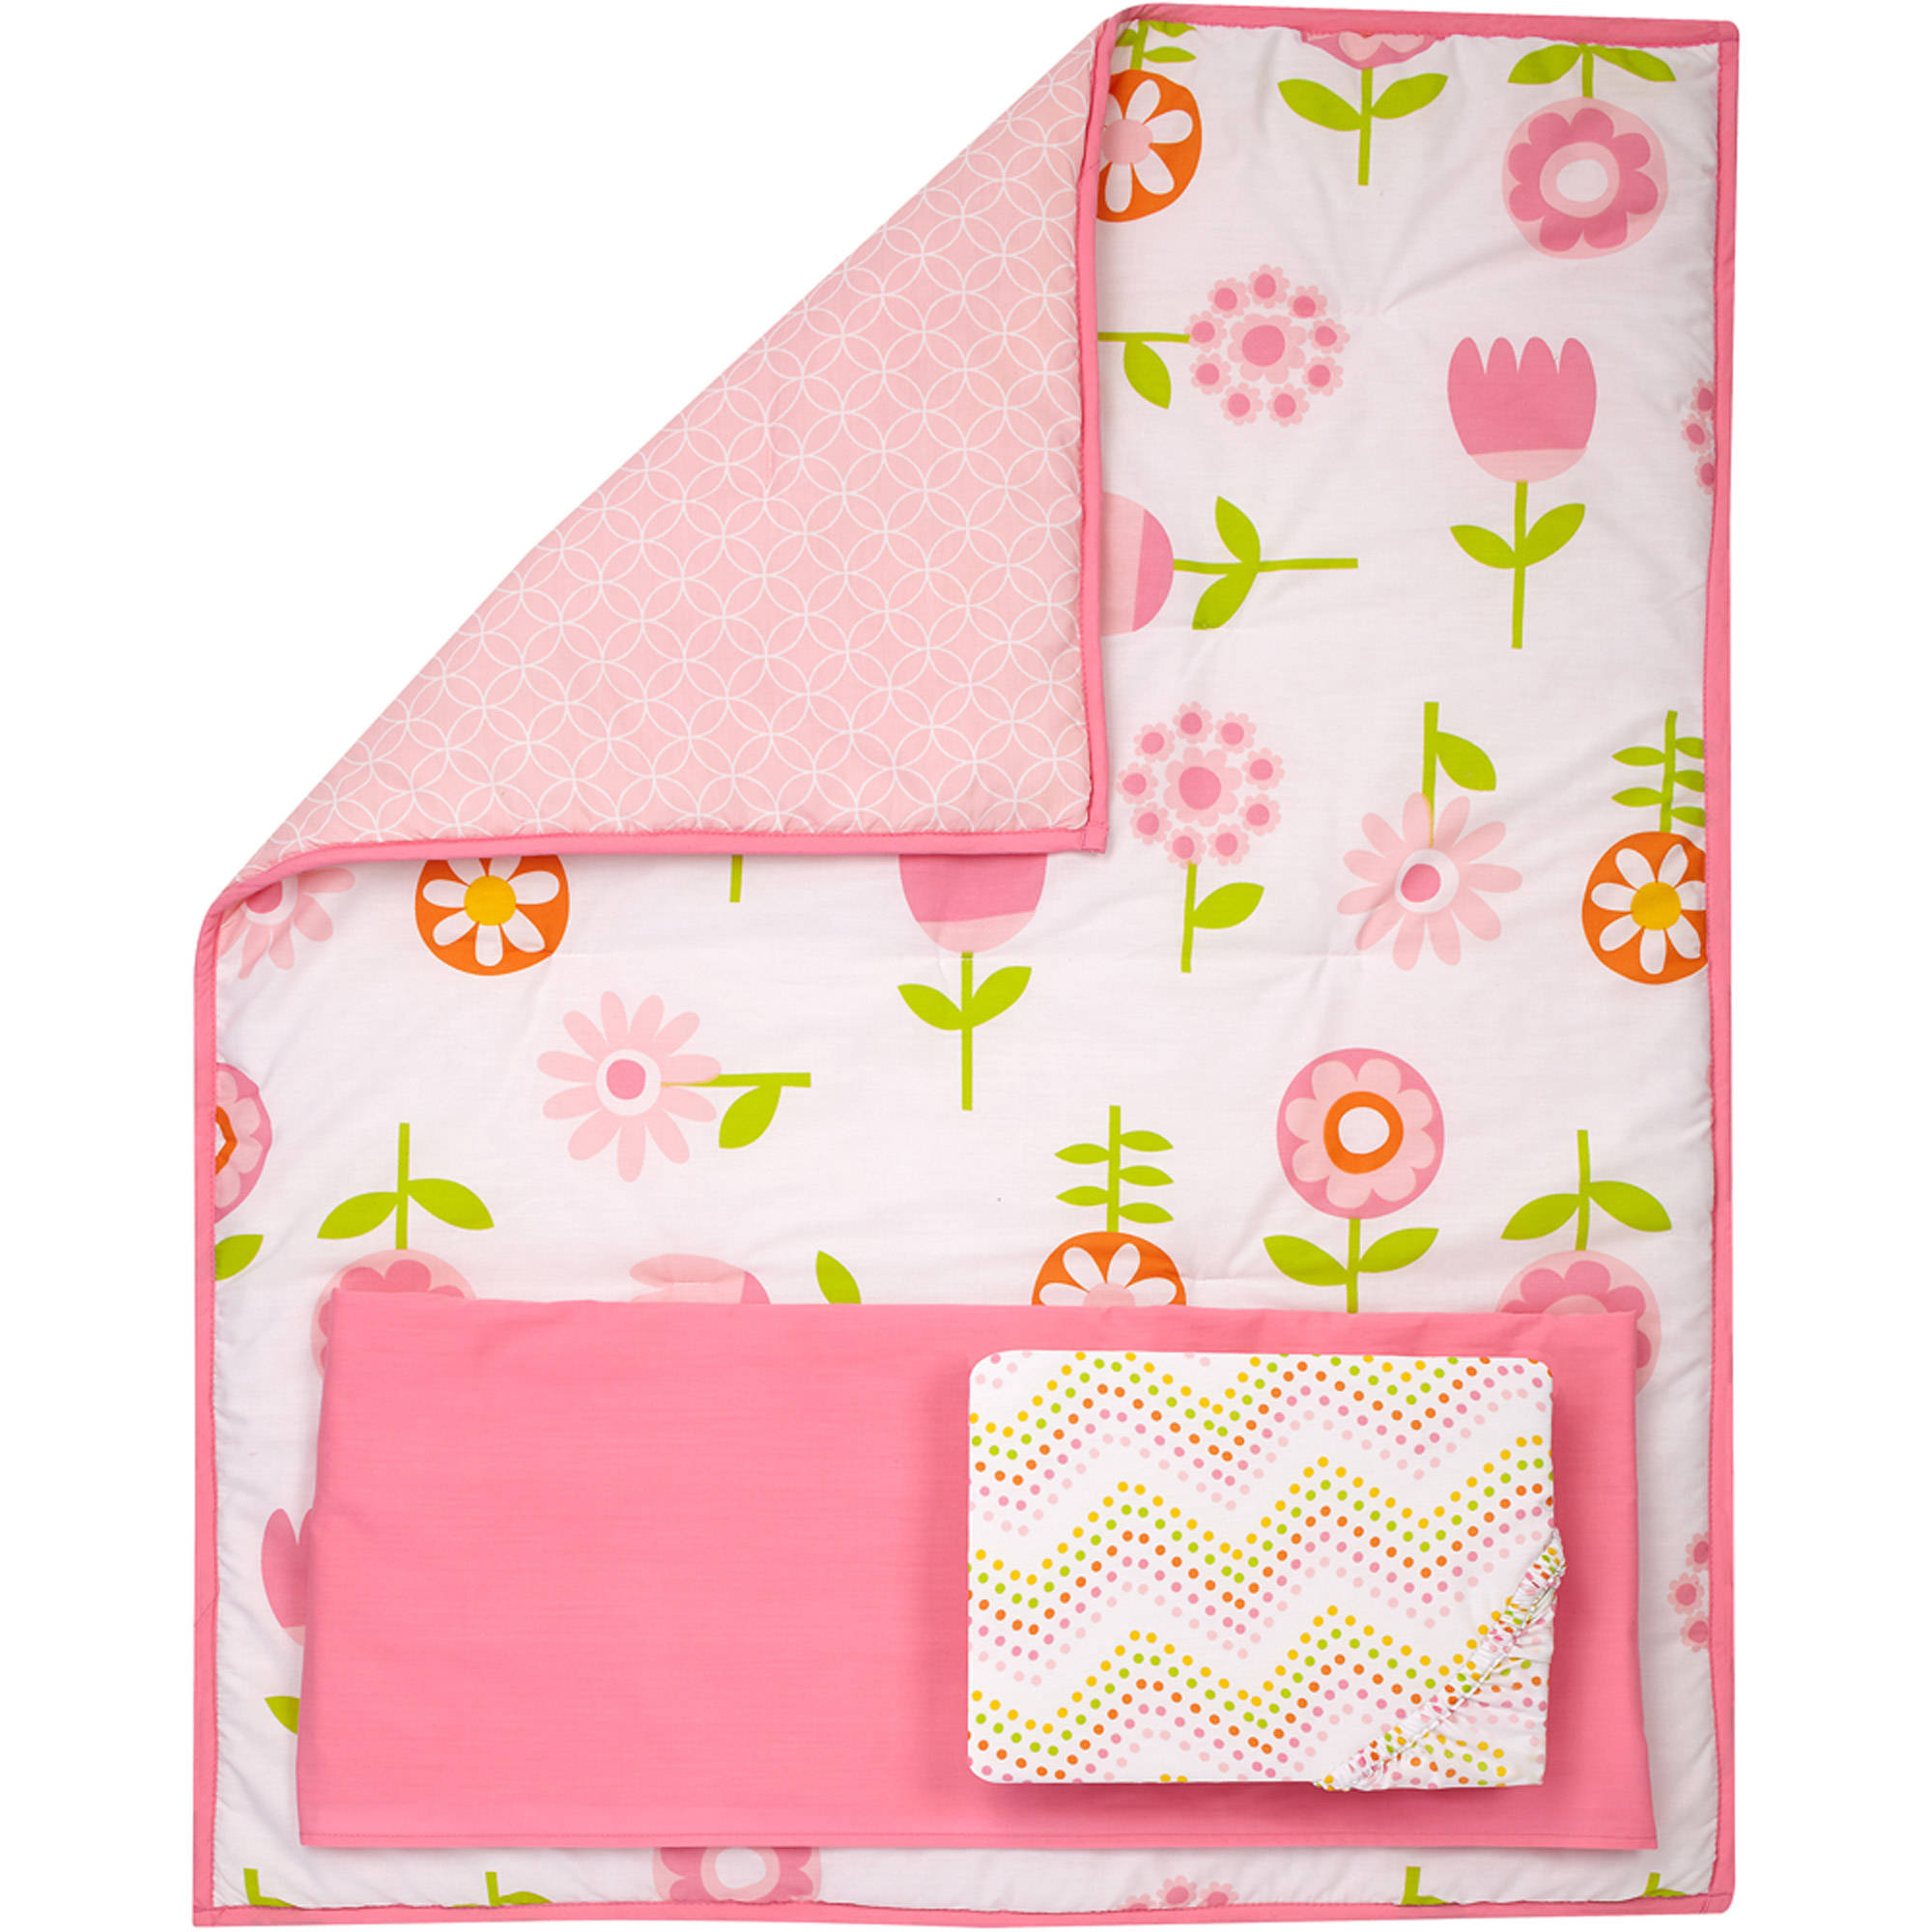 Little Bedding by Nojo Reversible Floral Fusion/Pink with Circles Print 3-Piece Crib Bedding Set